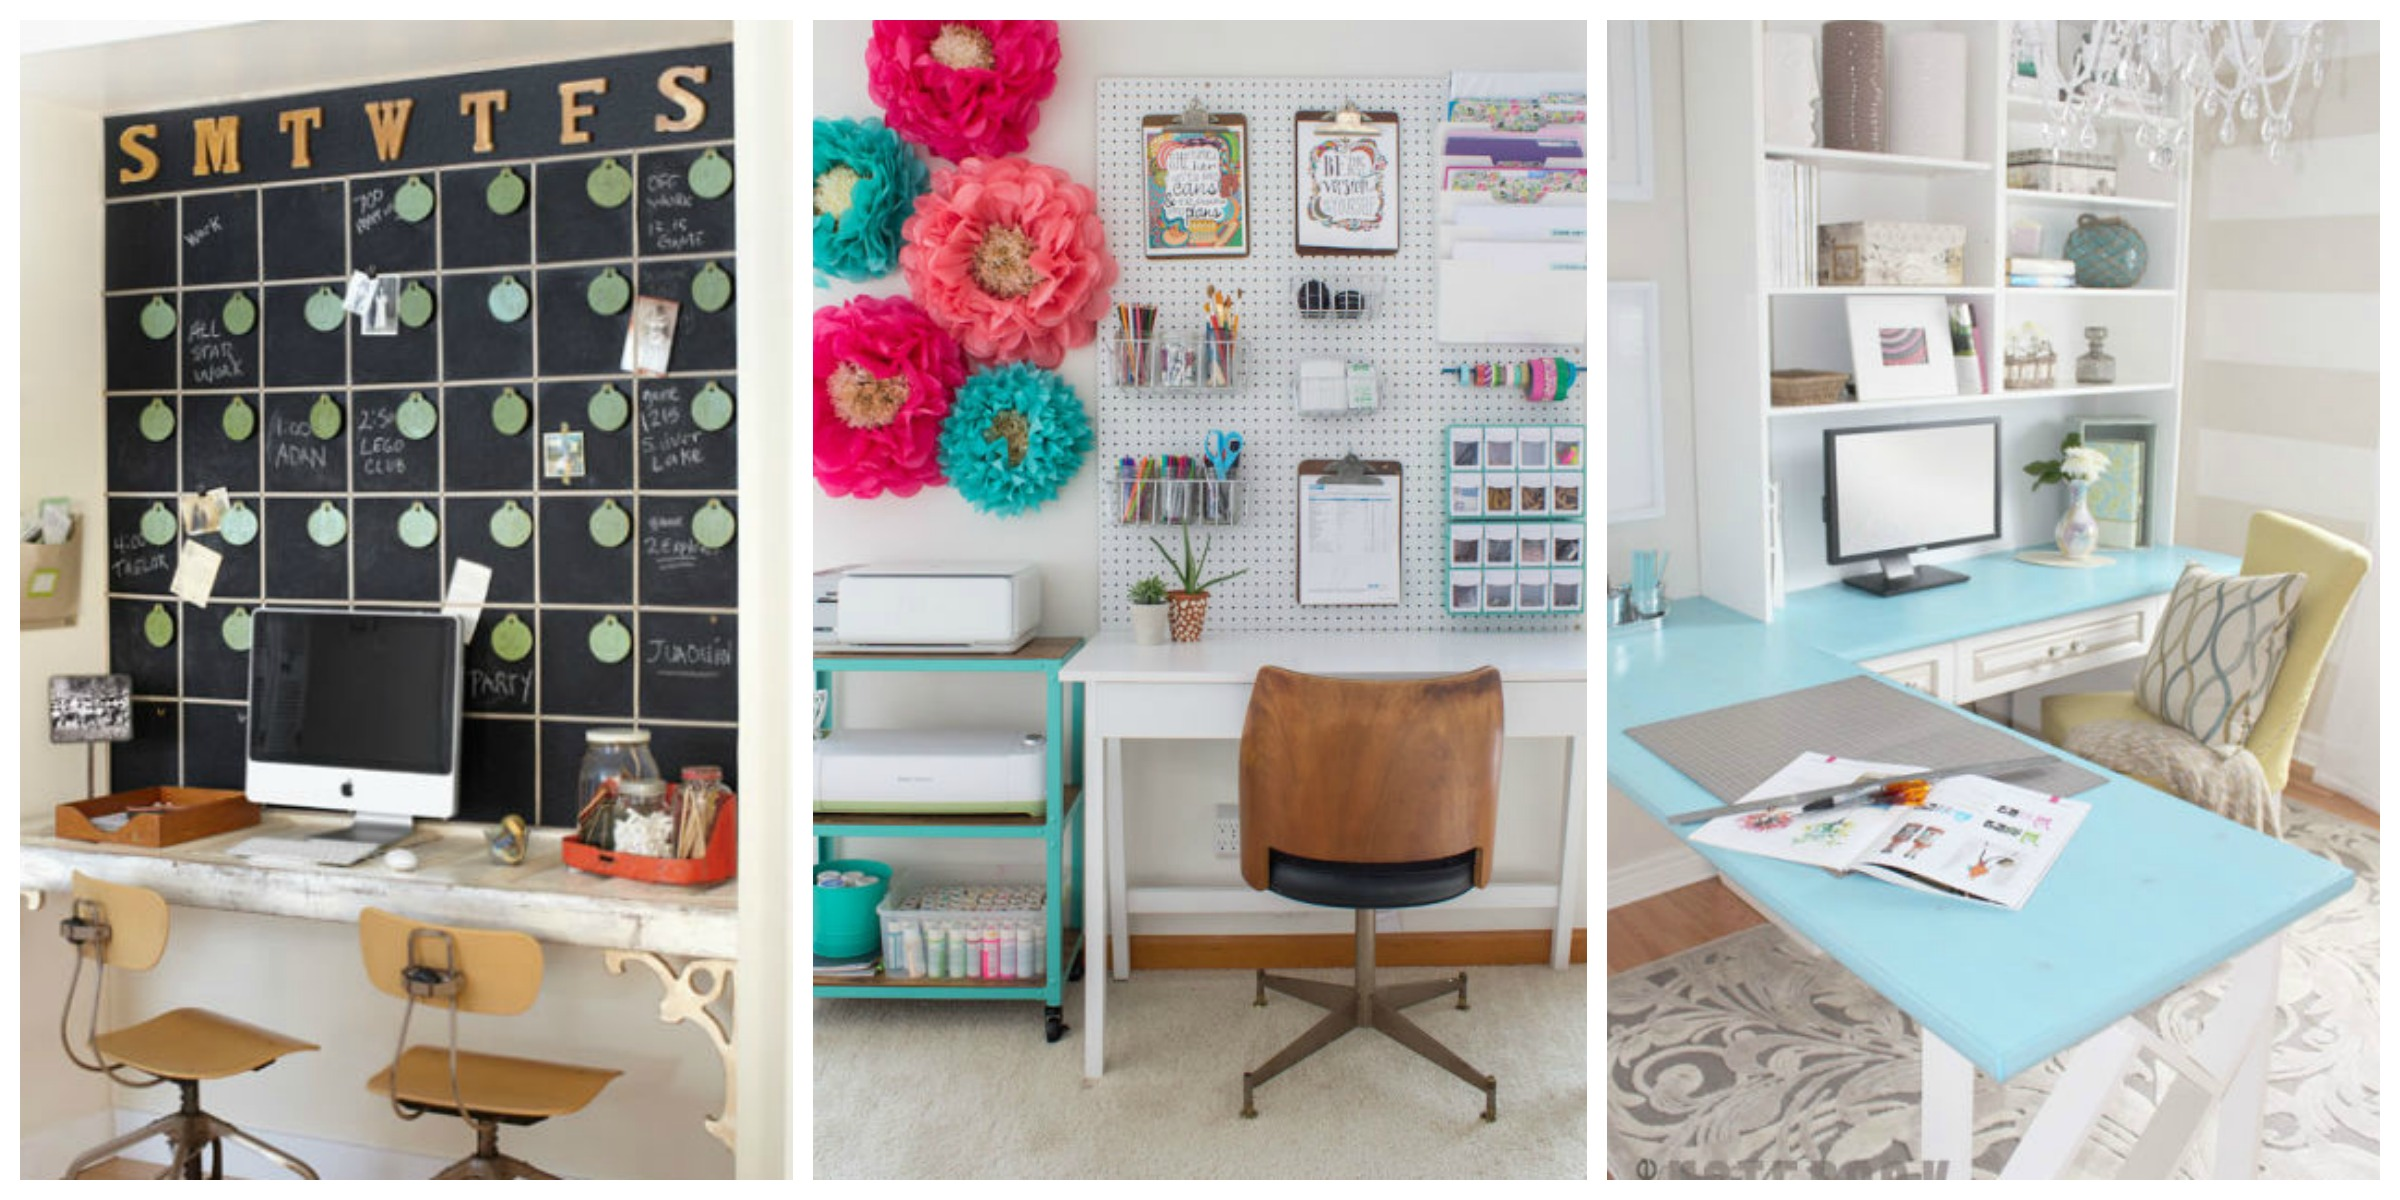 20 Inspiring Home Office Design Ideas For Small Spaces: How To Decorate A Home Office